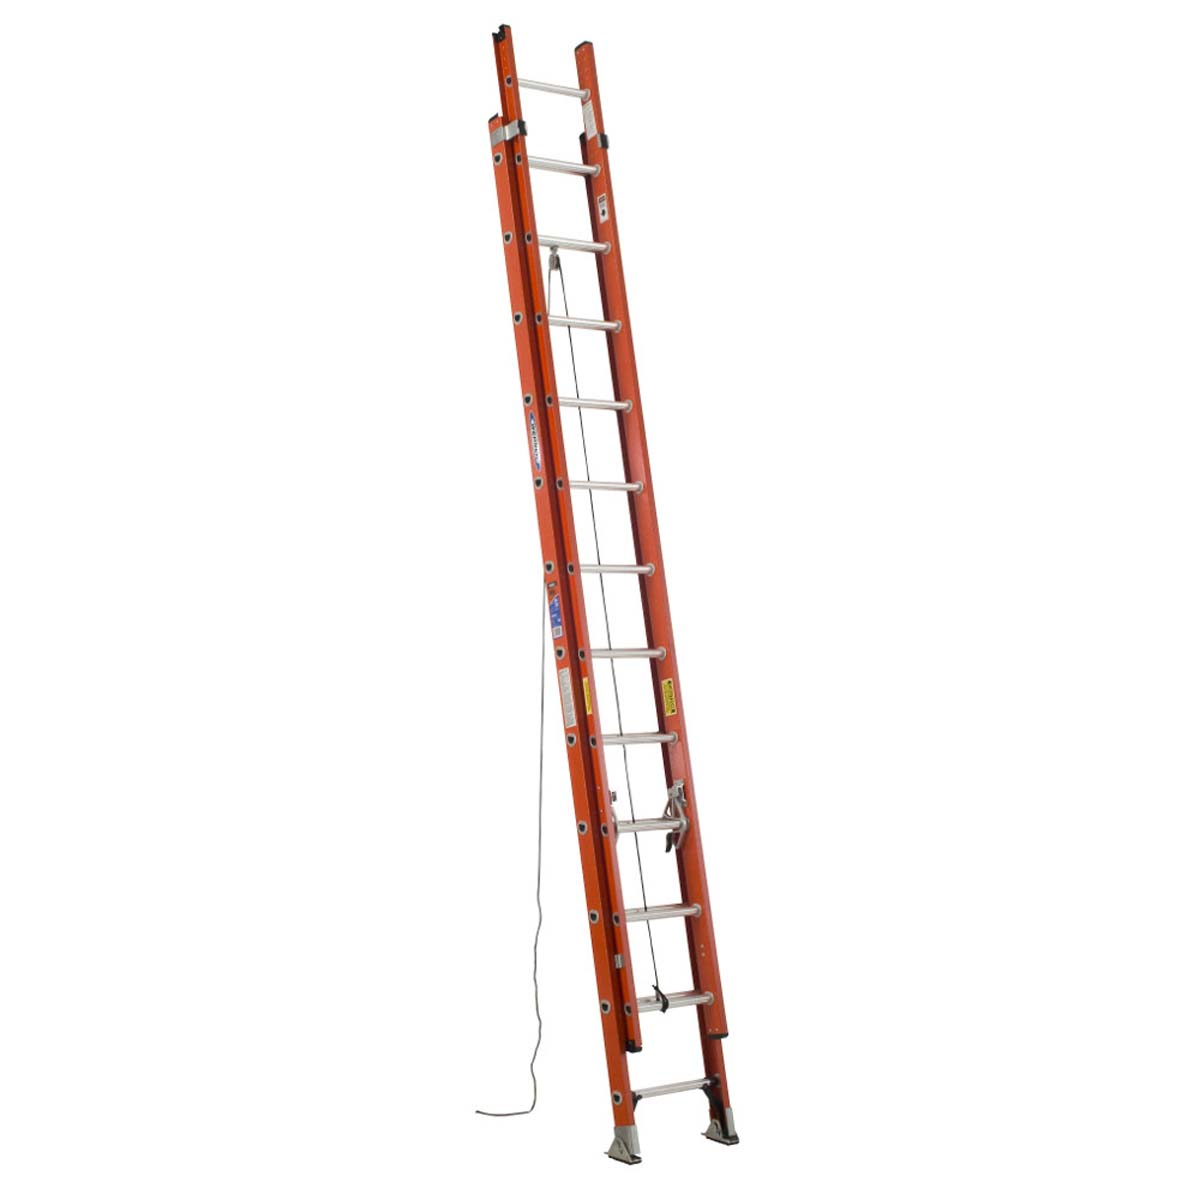 D6224-2 two section fiberglass extension ladder - 24'